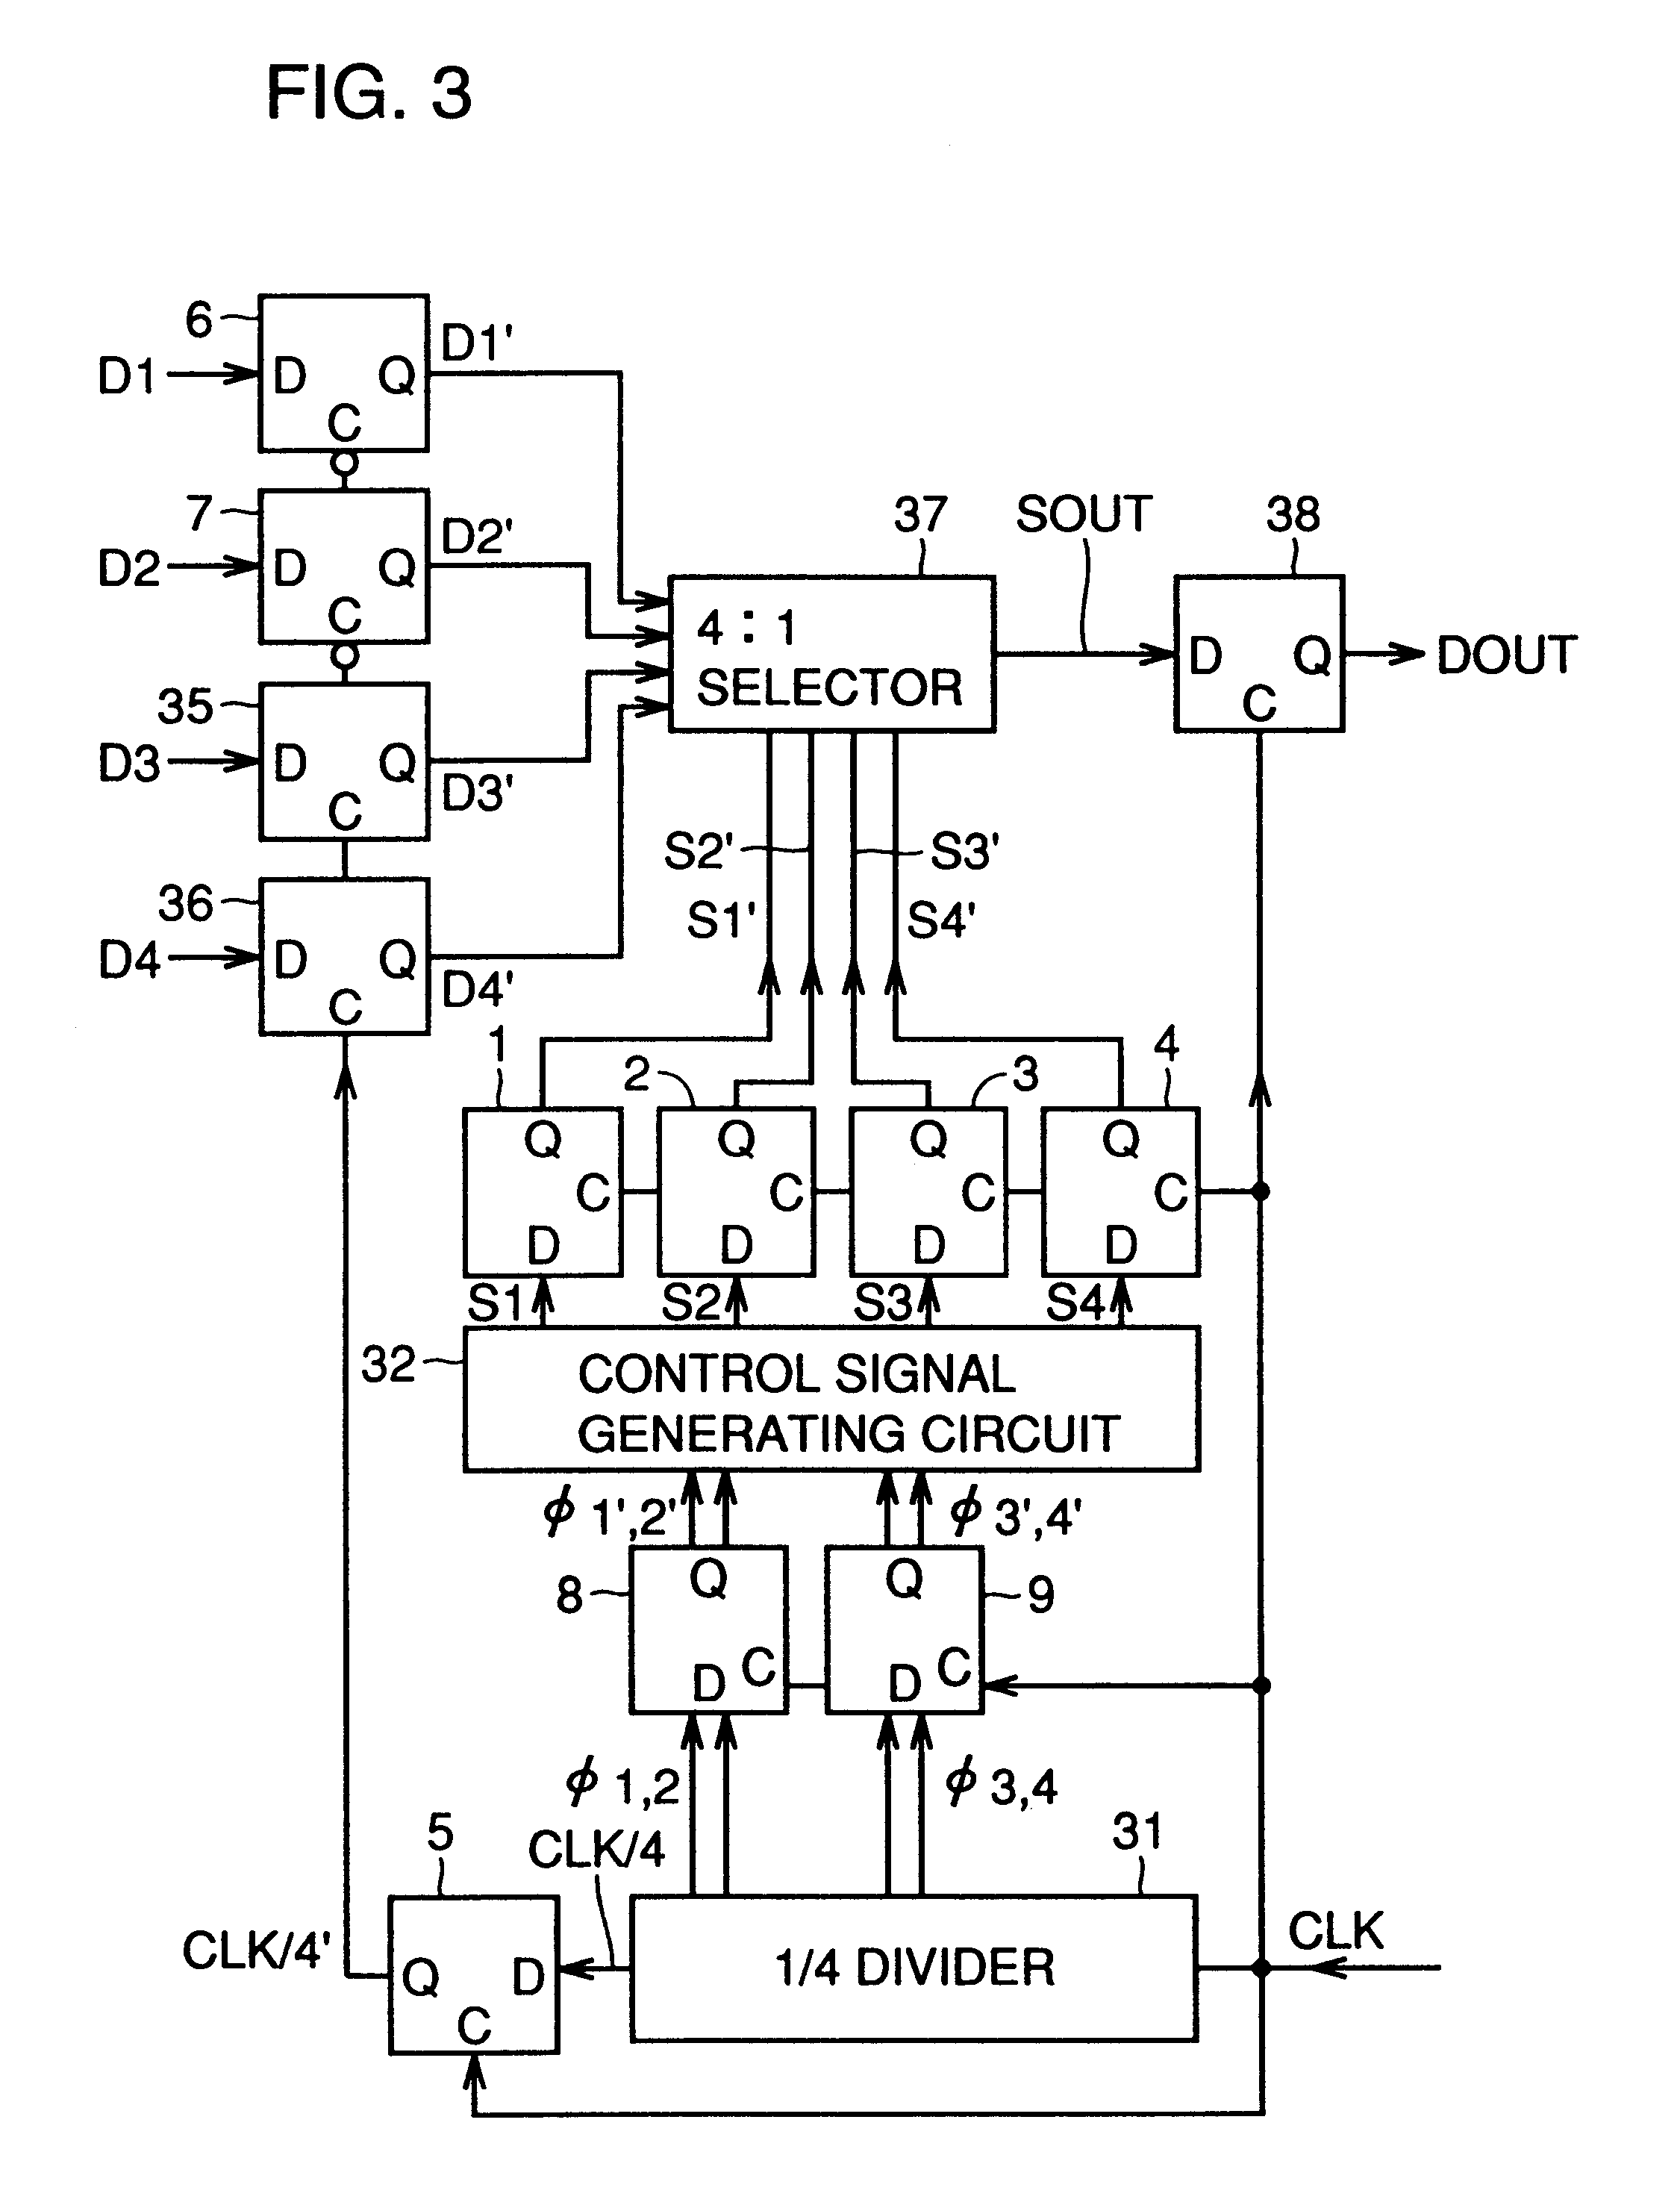 Lipo Battery Wiring Diagram furthermore Servo Motor Potentiometer further Brushless Dc Motor Driver Circuit Diagram additionally Potentiometer Diagram Symbol moreover Dc Power Schematic Diagram. on wiring a potentiometer for servo